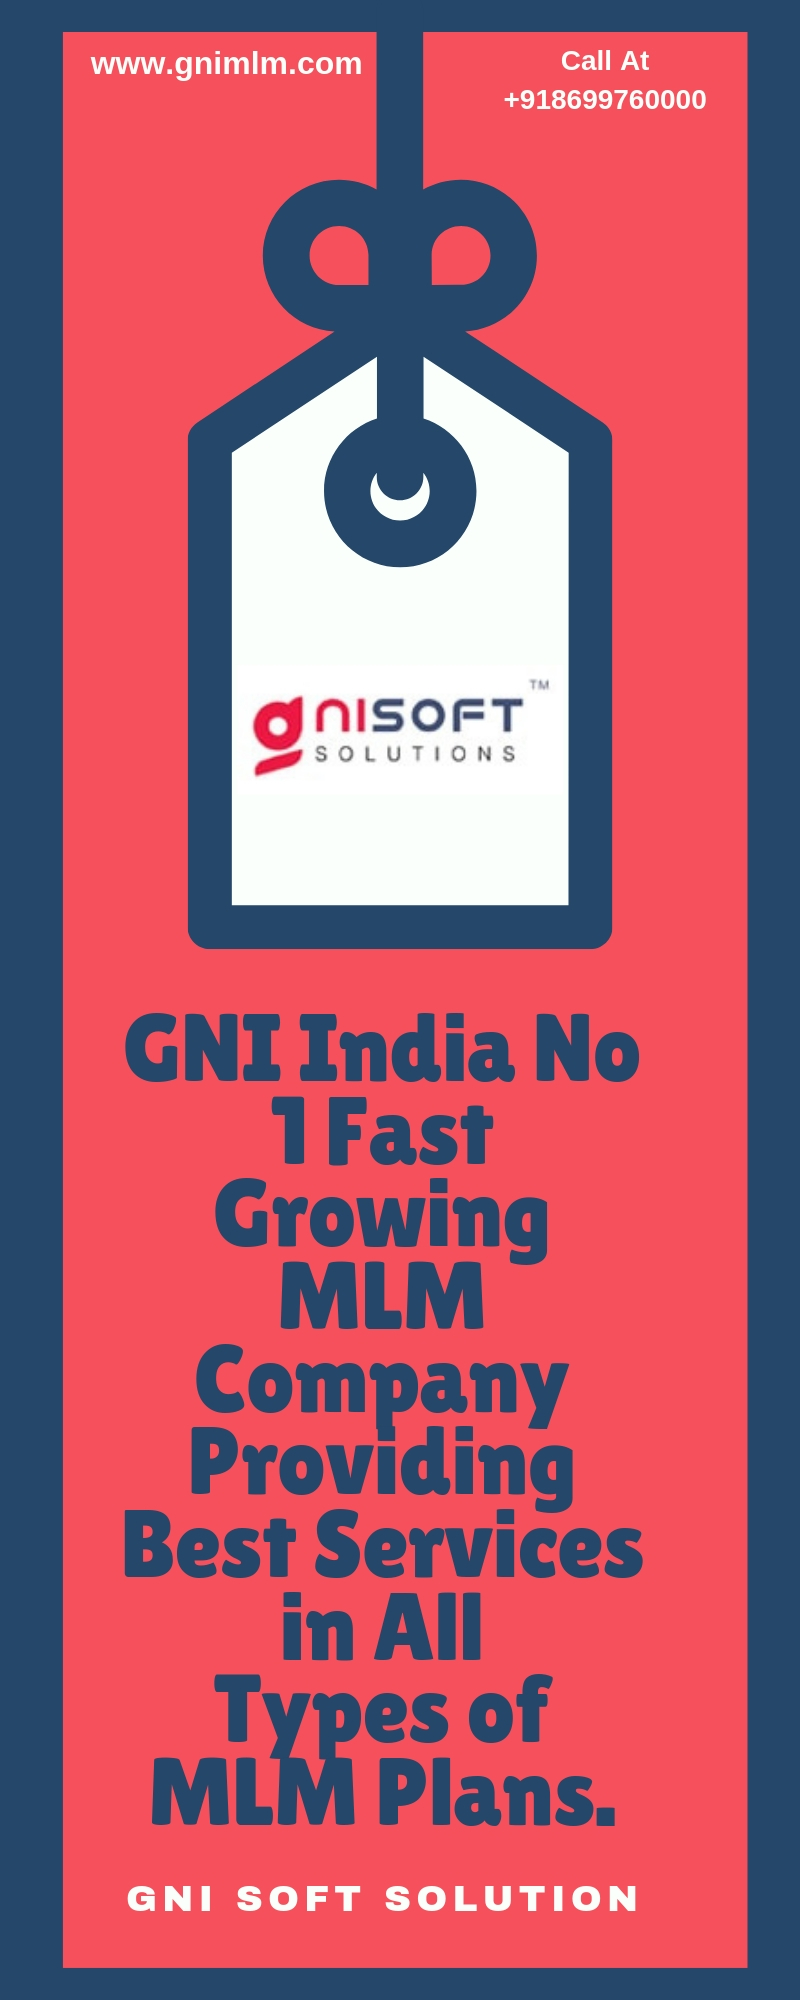 Best MLM Software In India - GNI Soft Solutions